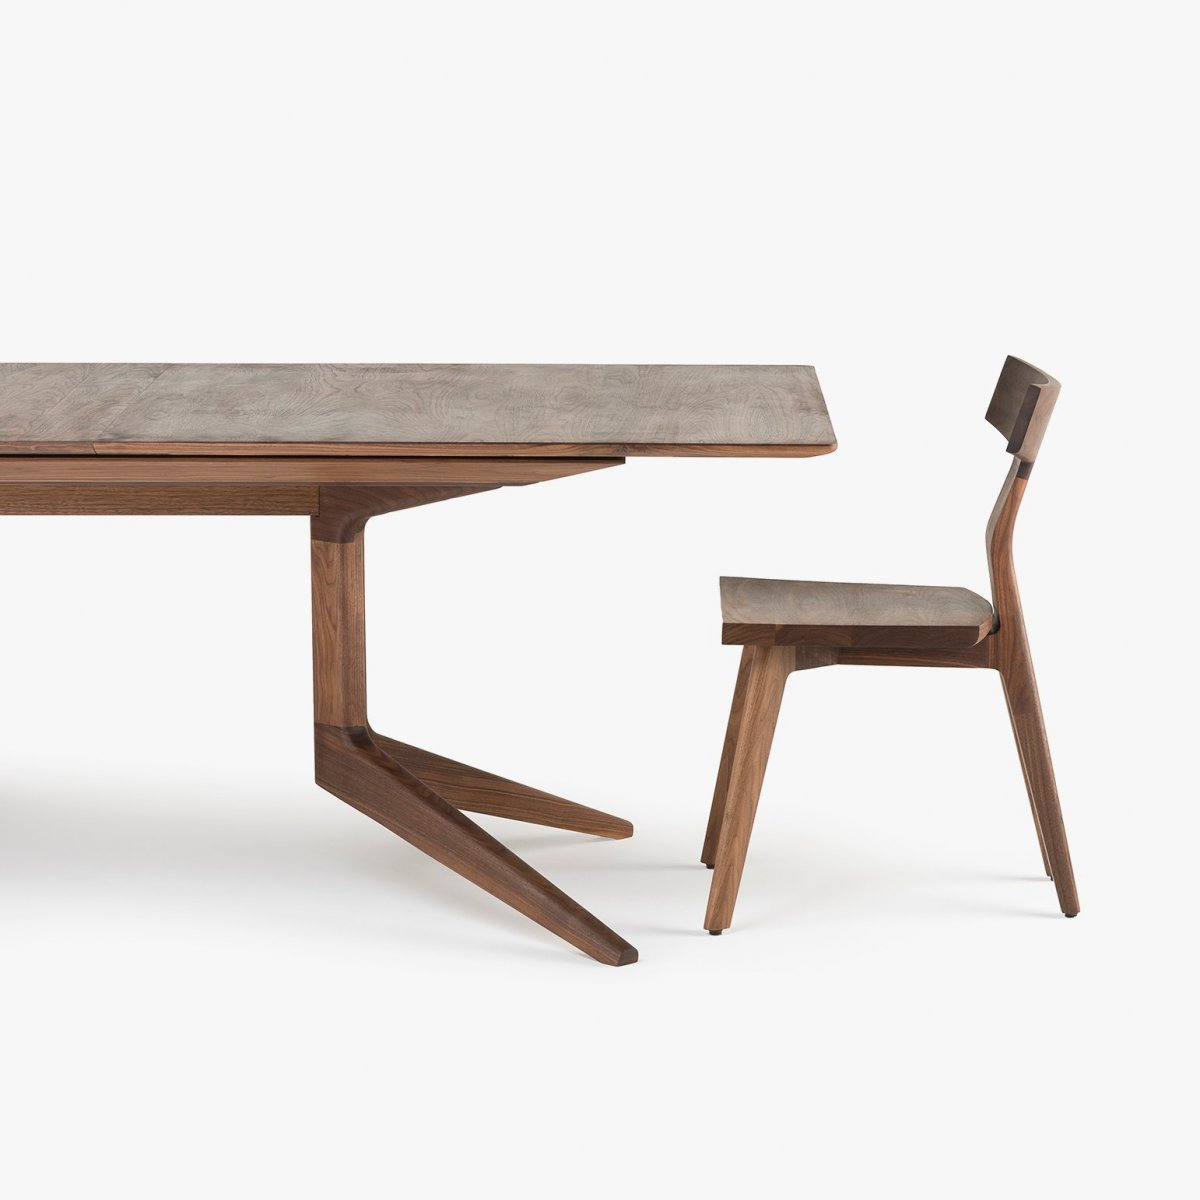 341E Light Extending Table in Danish oiled walnut, with Fin Dining Chair.